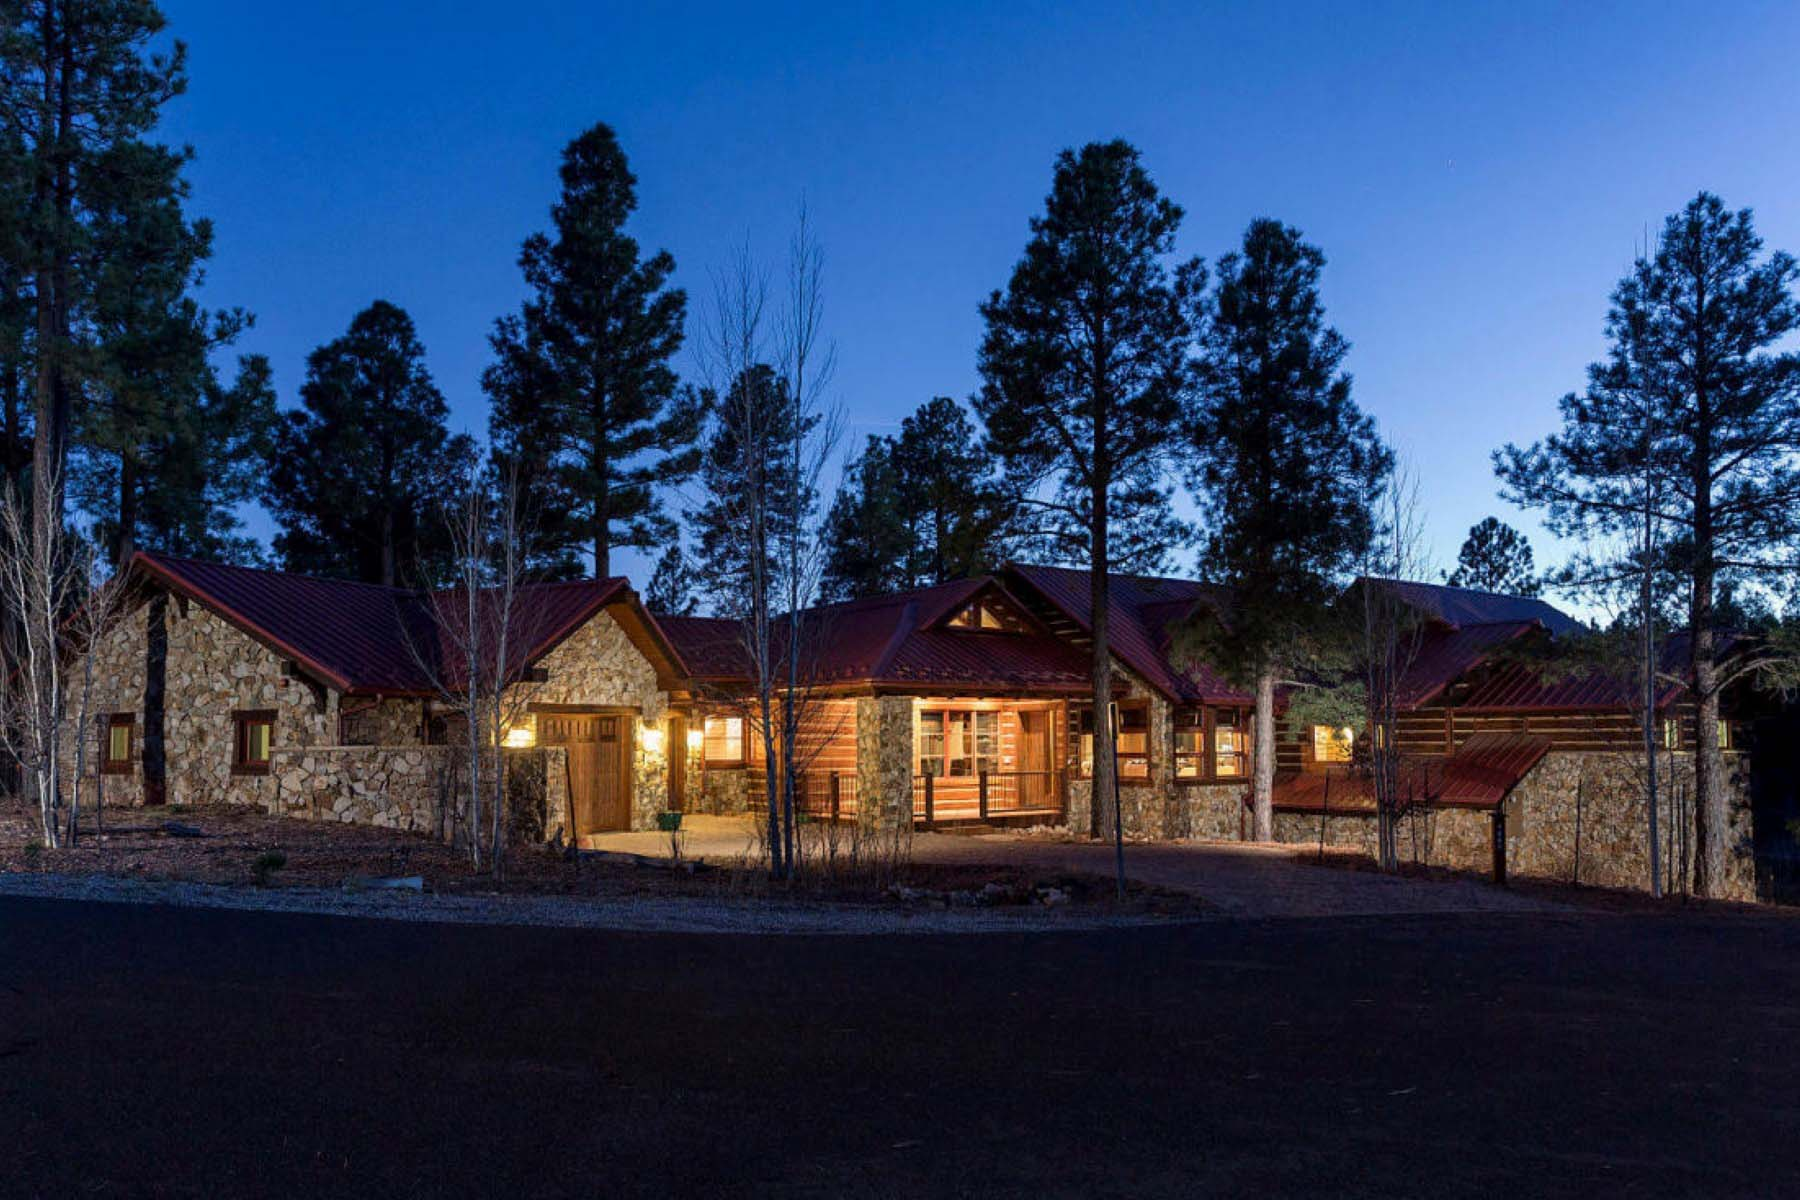 一戸建て のために 売買 アット Incredible Luxury Mountain Home On a Prime Cul-de-Sac in Exclusive Pine Canyon 1887 E Marengo Court Flagstaff, アリゾナ 86005 アメリカ合衆国